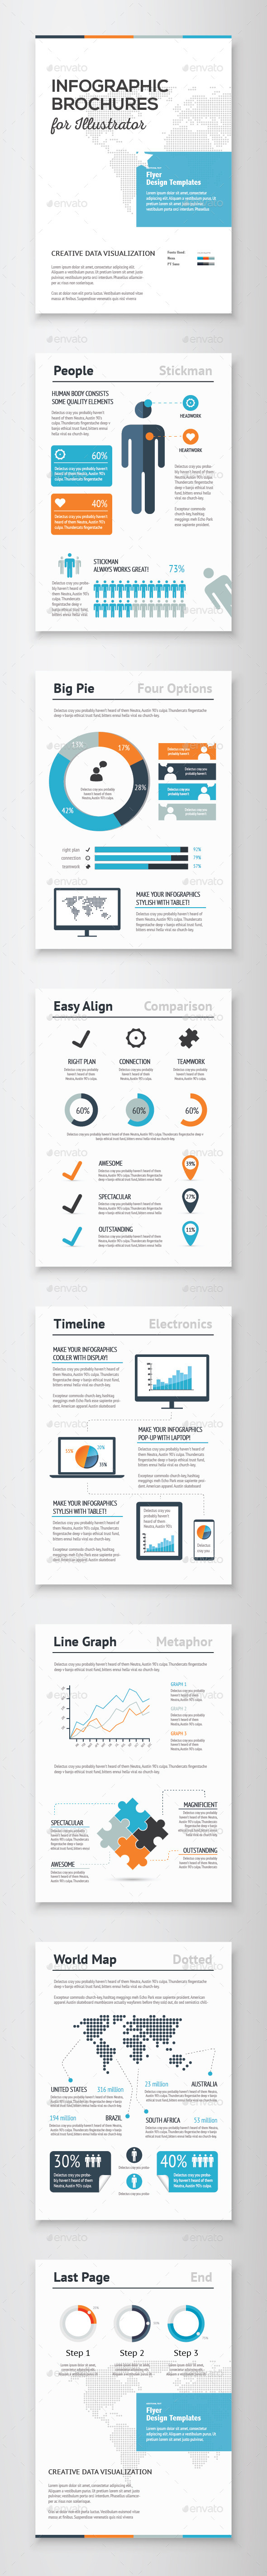 Infographic Brochure Vector Elements Kit 1 - Infographics